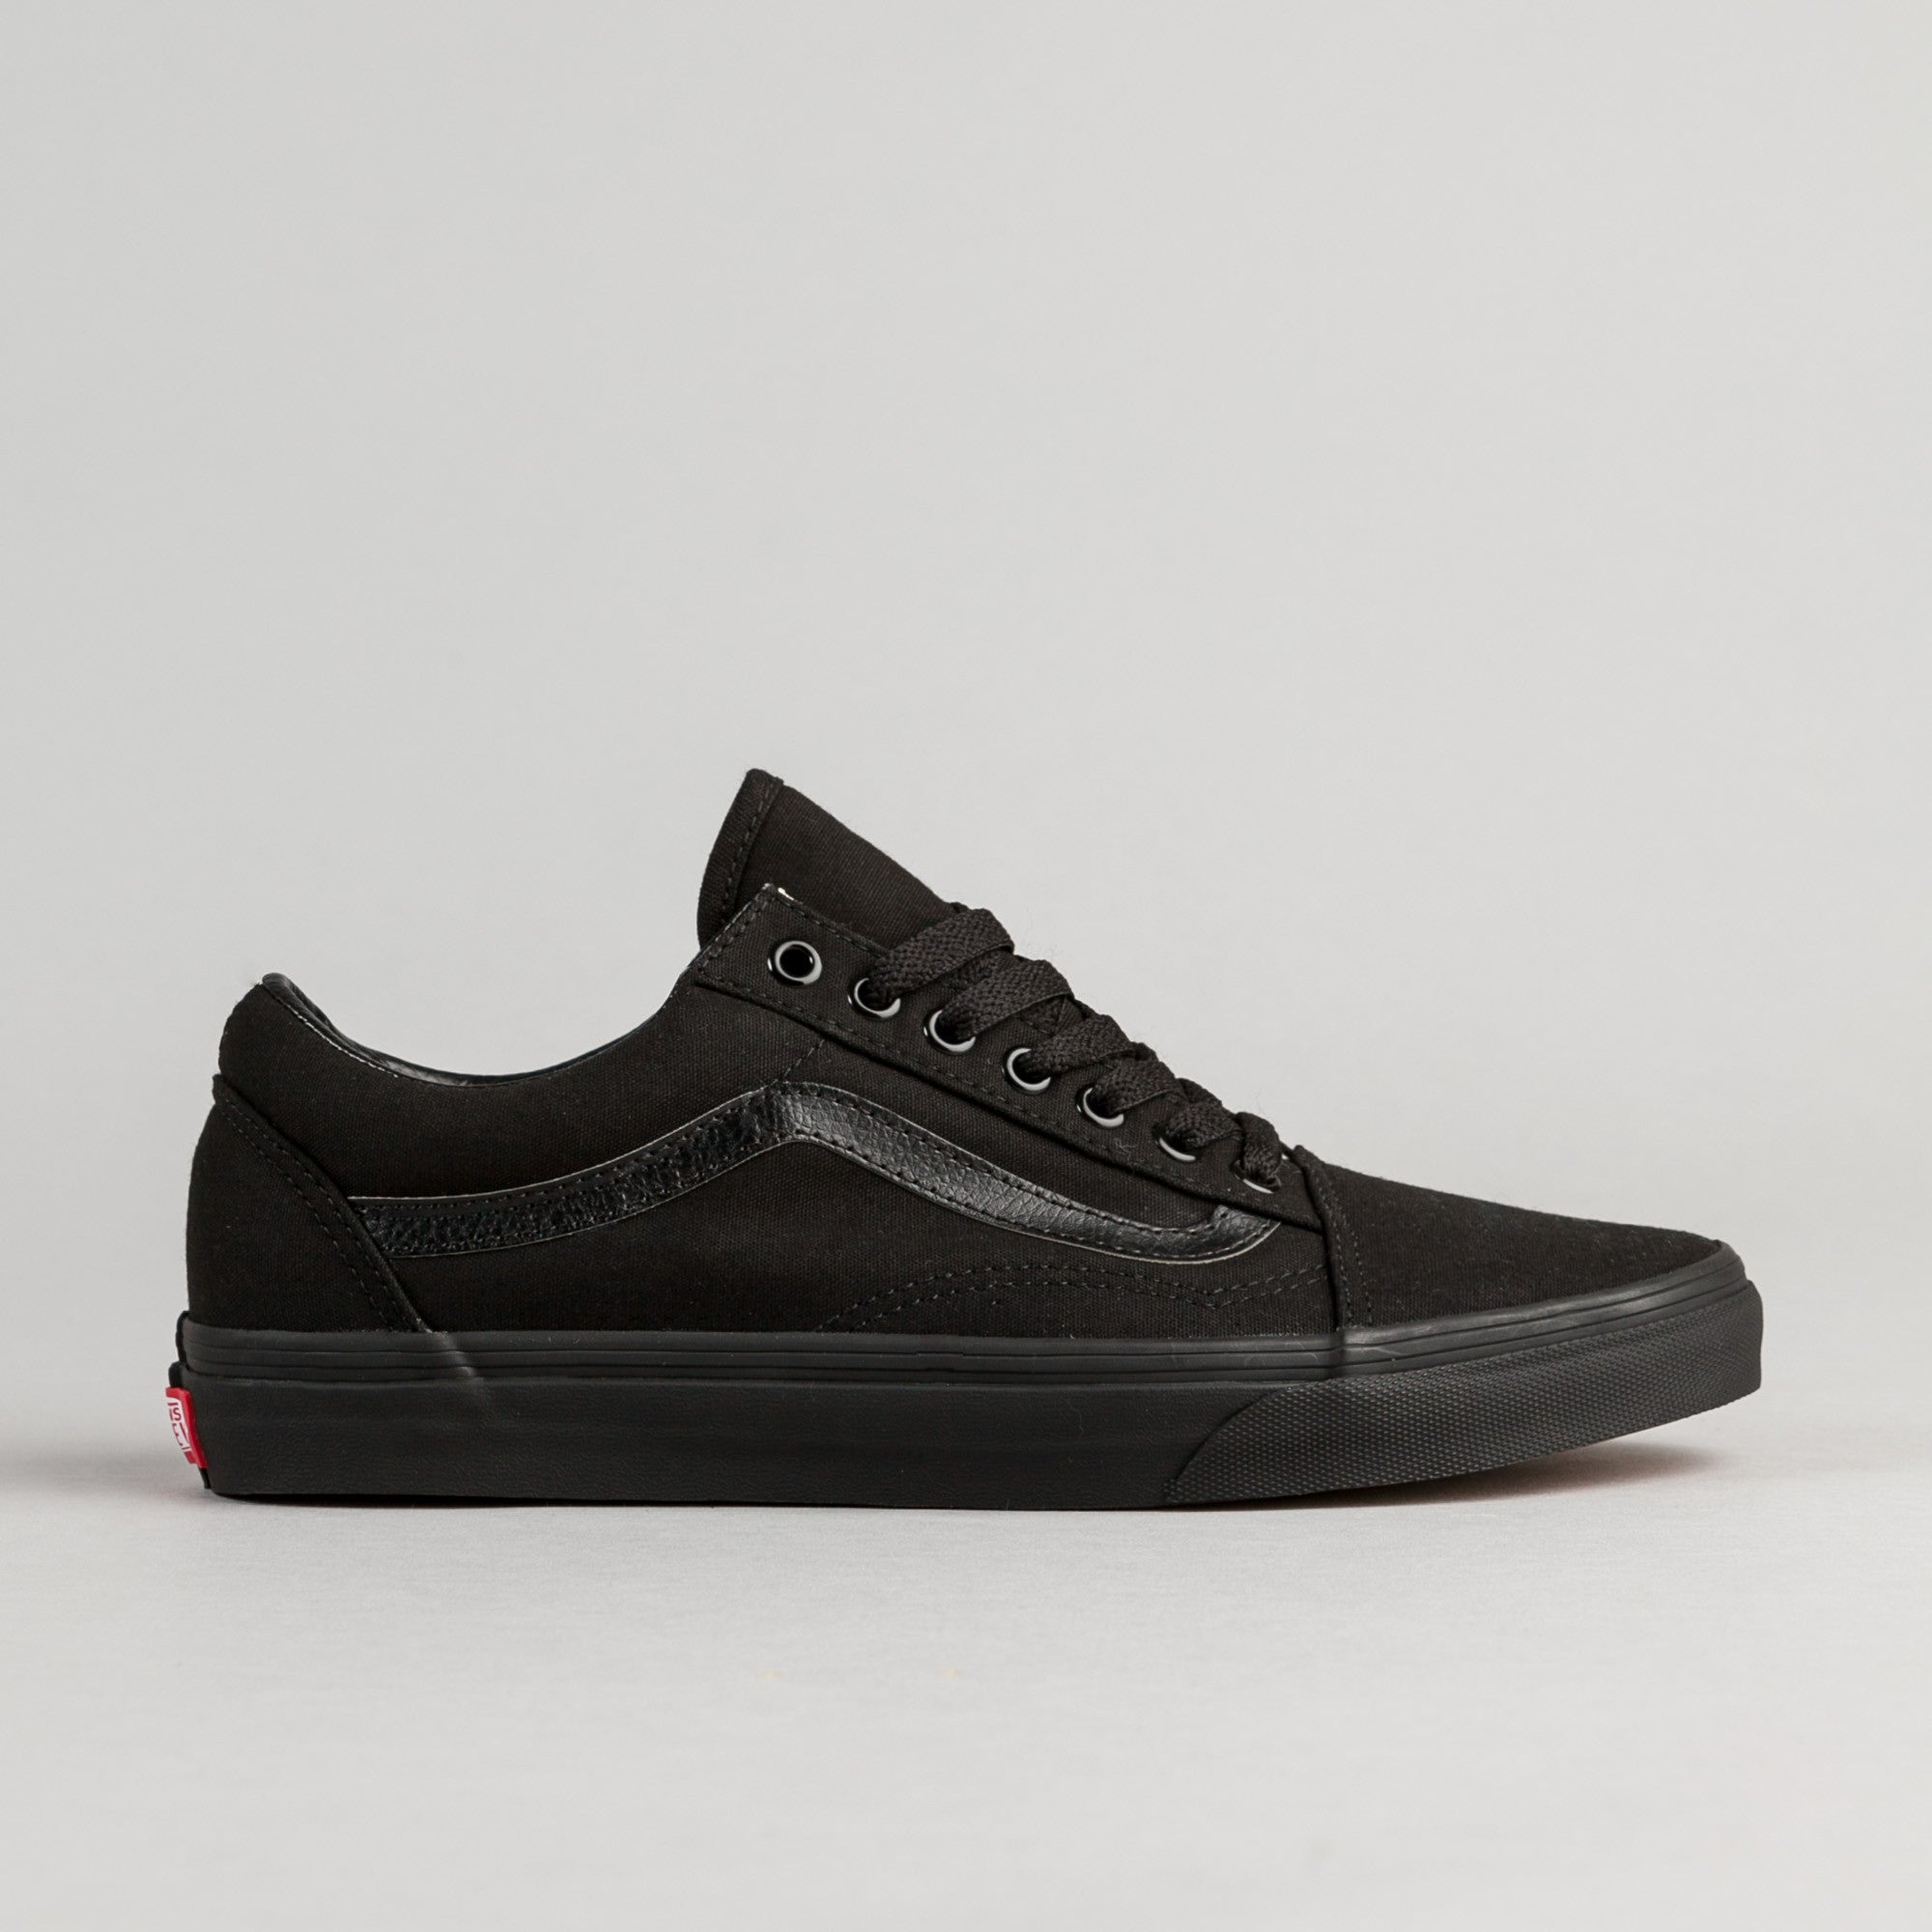 Vans Old Skool Shoes - Black / Black Canvas